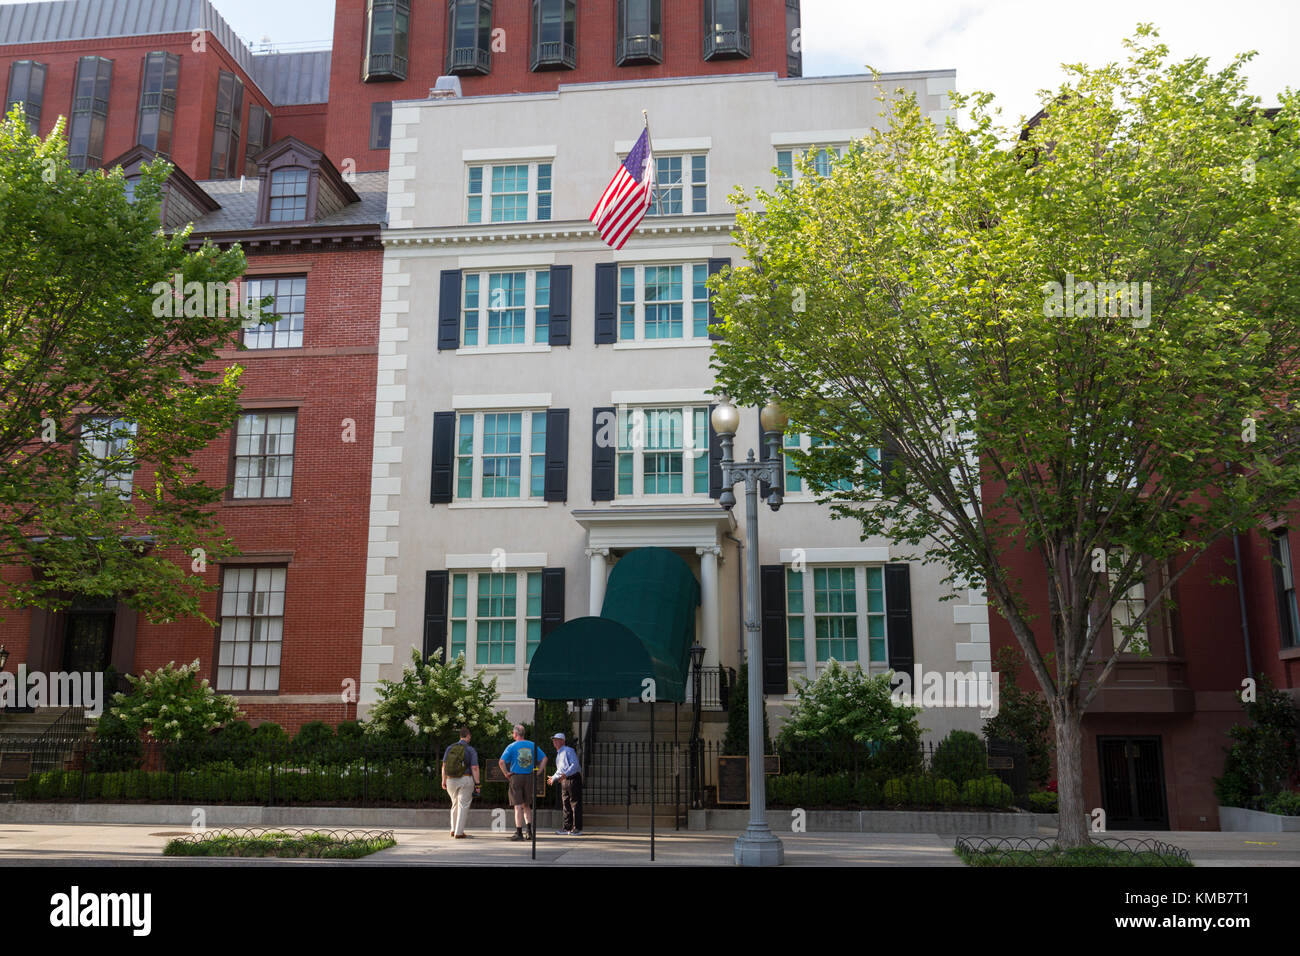 The original Blair House, part of the President's Guest